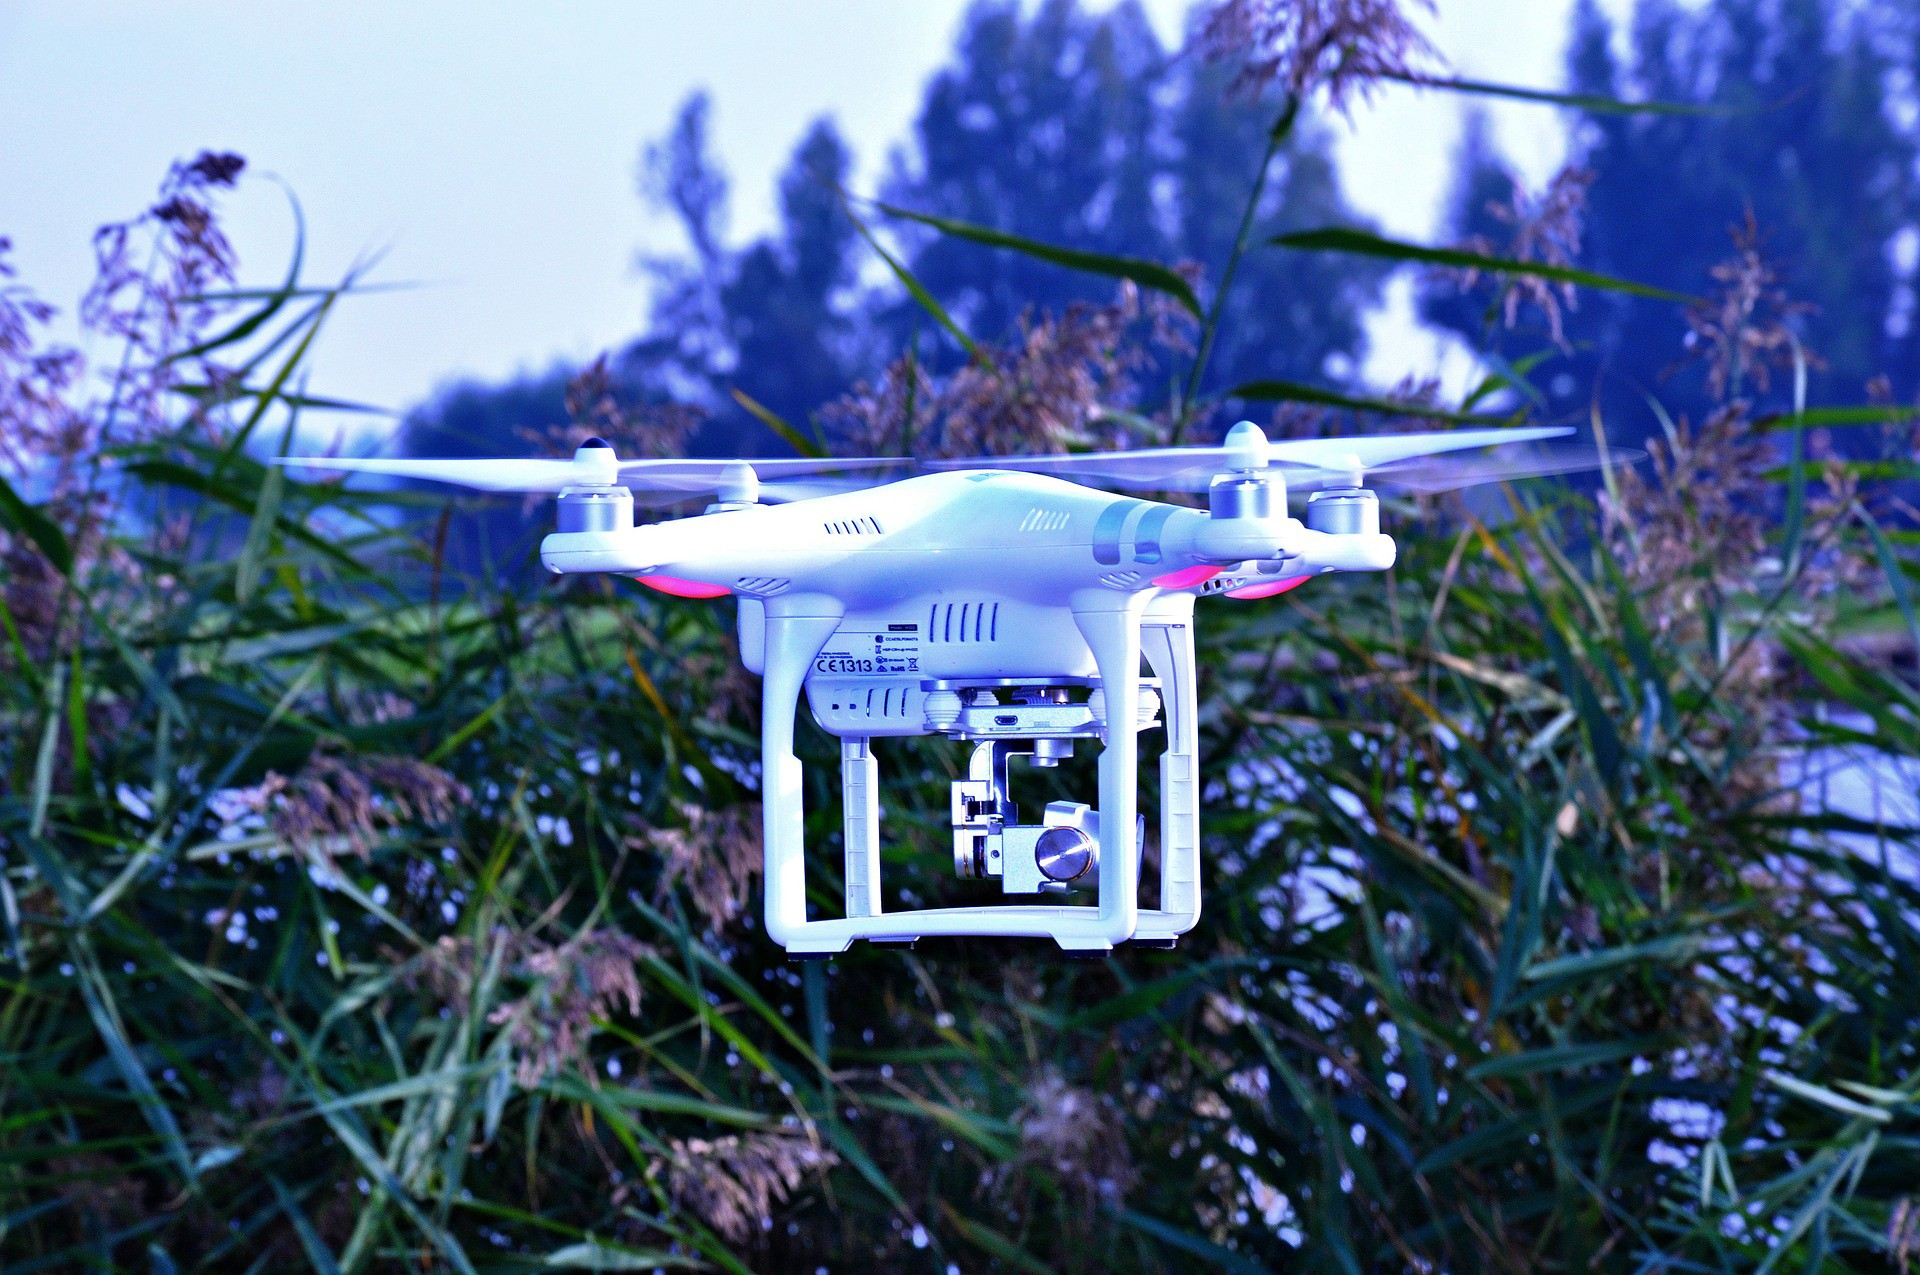 /pleasure-and-business-merge-here-are-5-industries-drone-tech-is-transforming-949c742c35b1 feature image